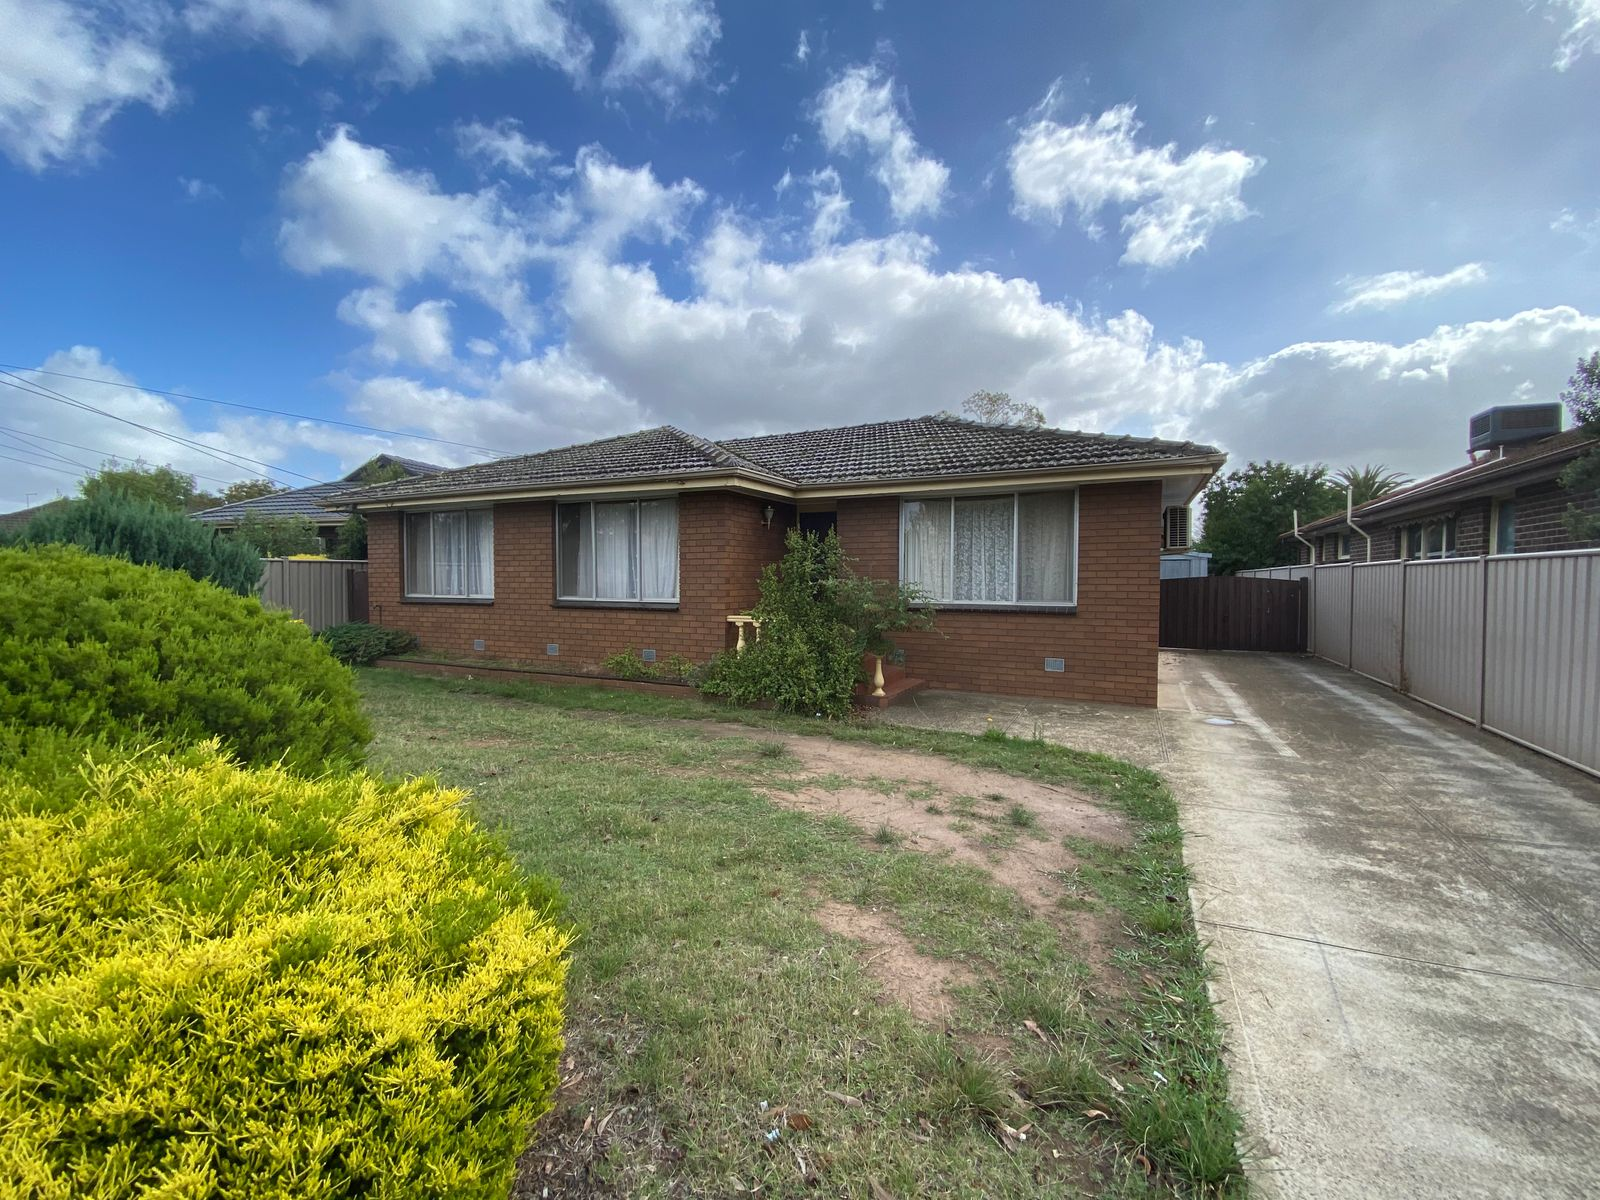 4 Spring Drive, Hoppers Crossing, VIC 3029